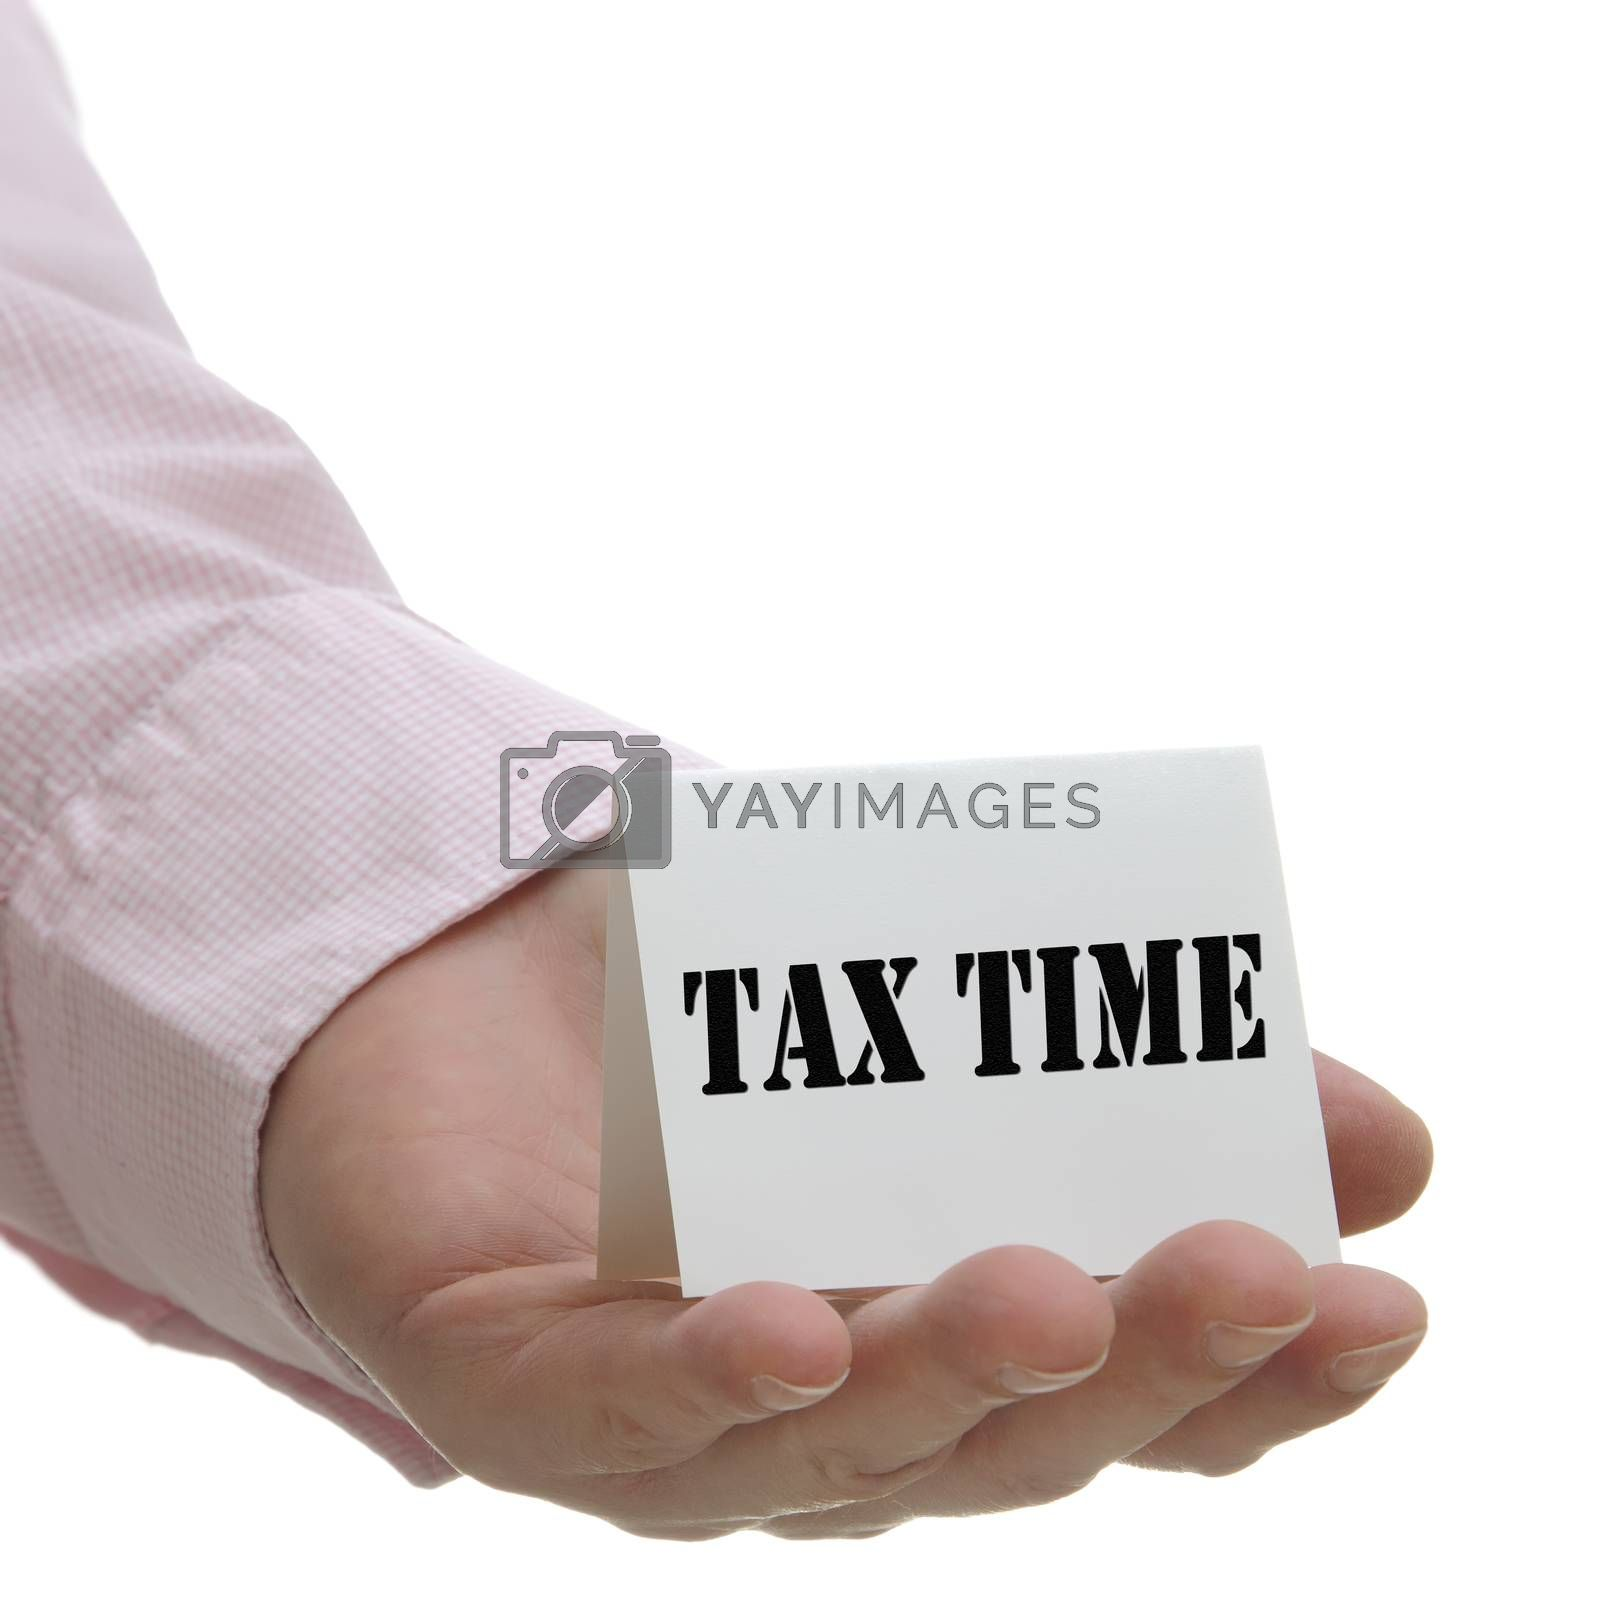 Business man holding tax time sign on hand